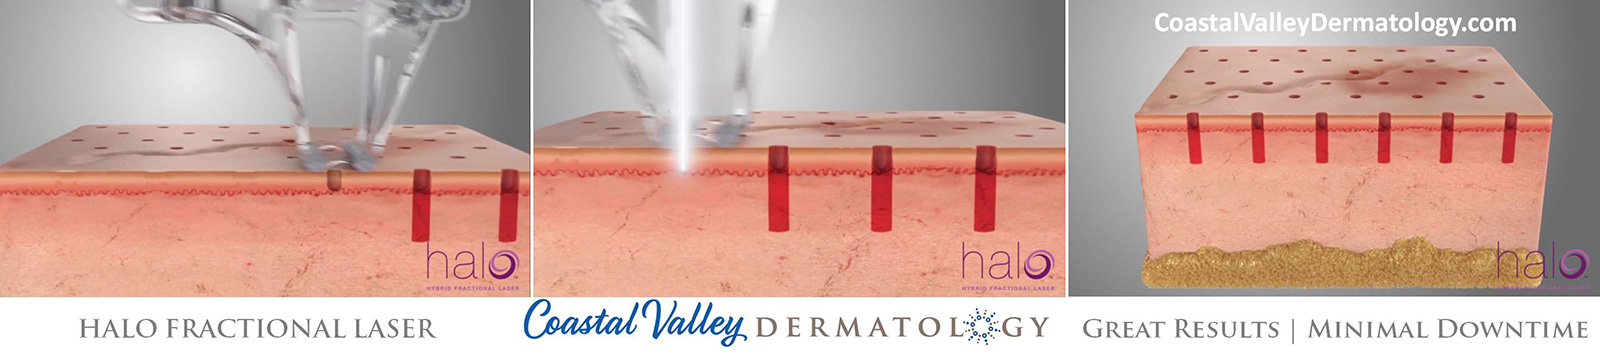 coastal-valley-dermatology-carmel-halo-dual-laser-rejuvenation-photo